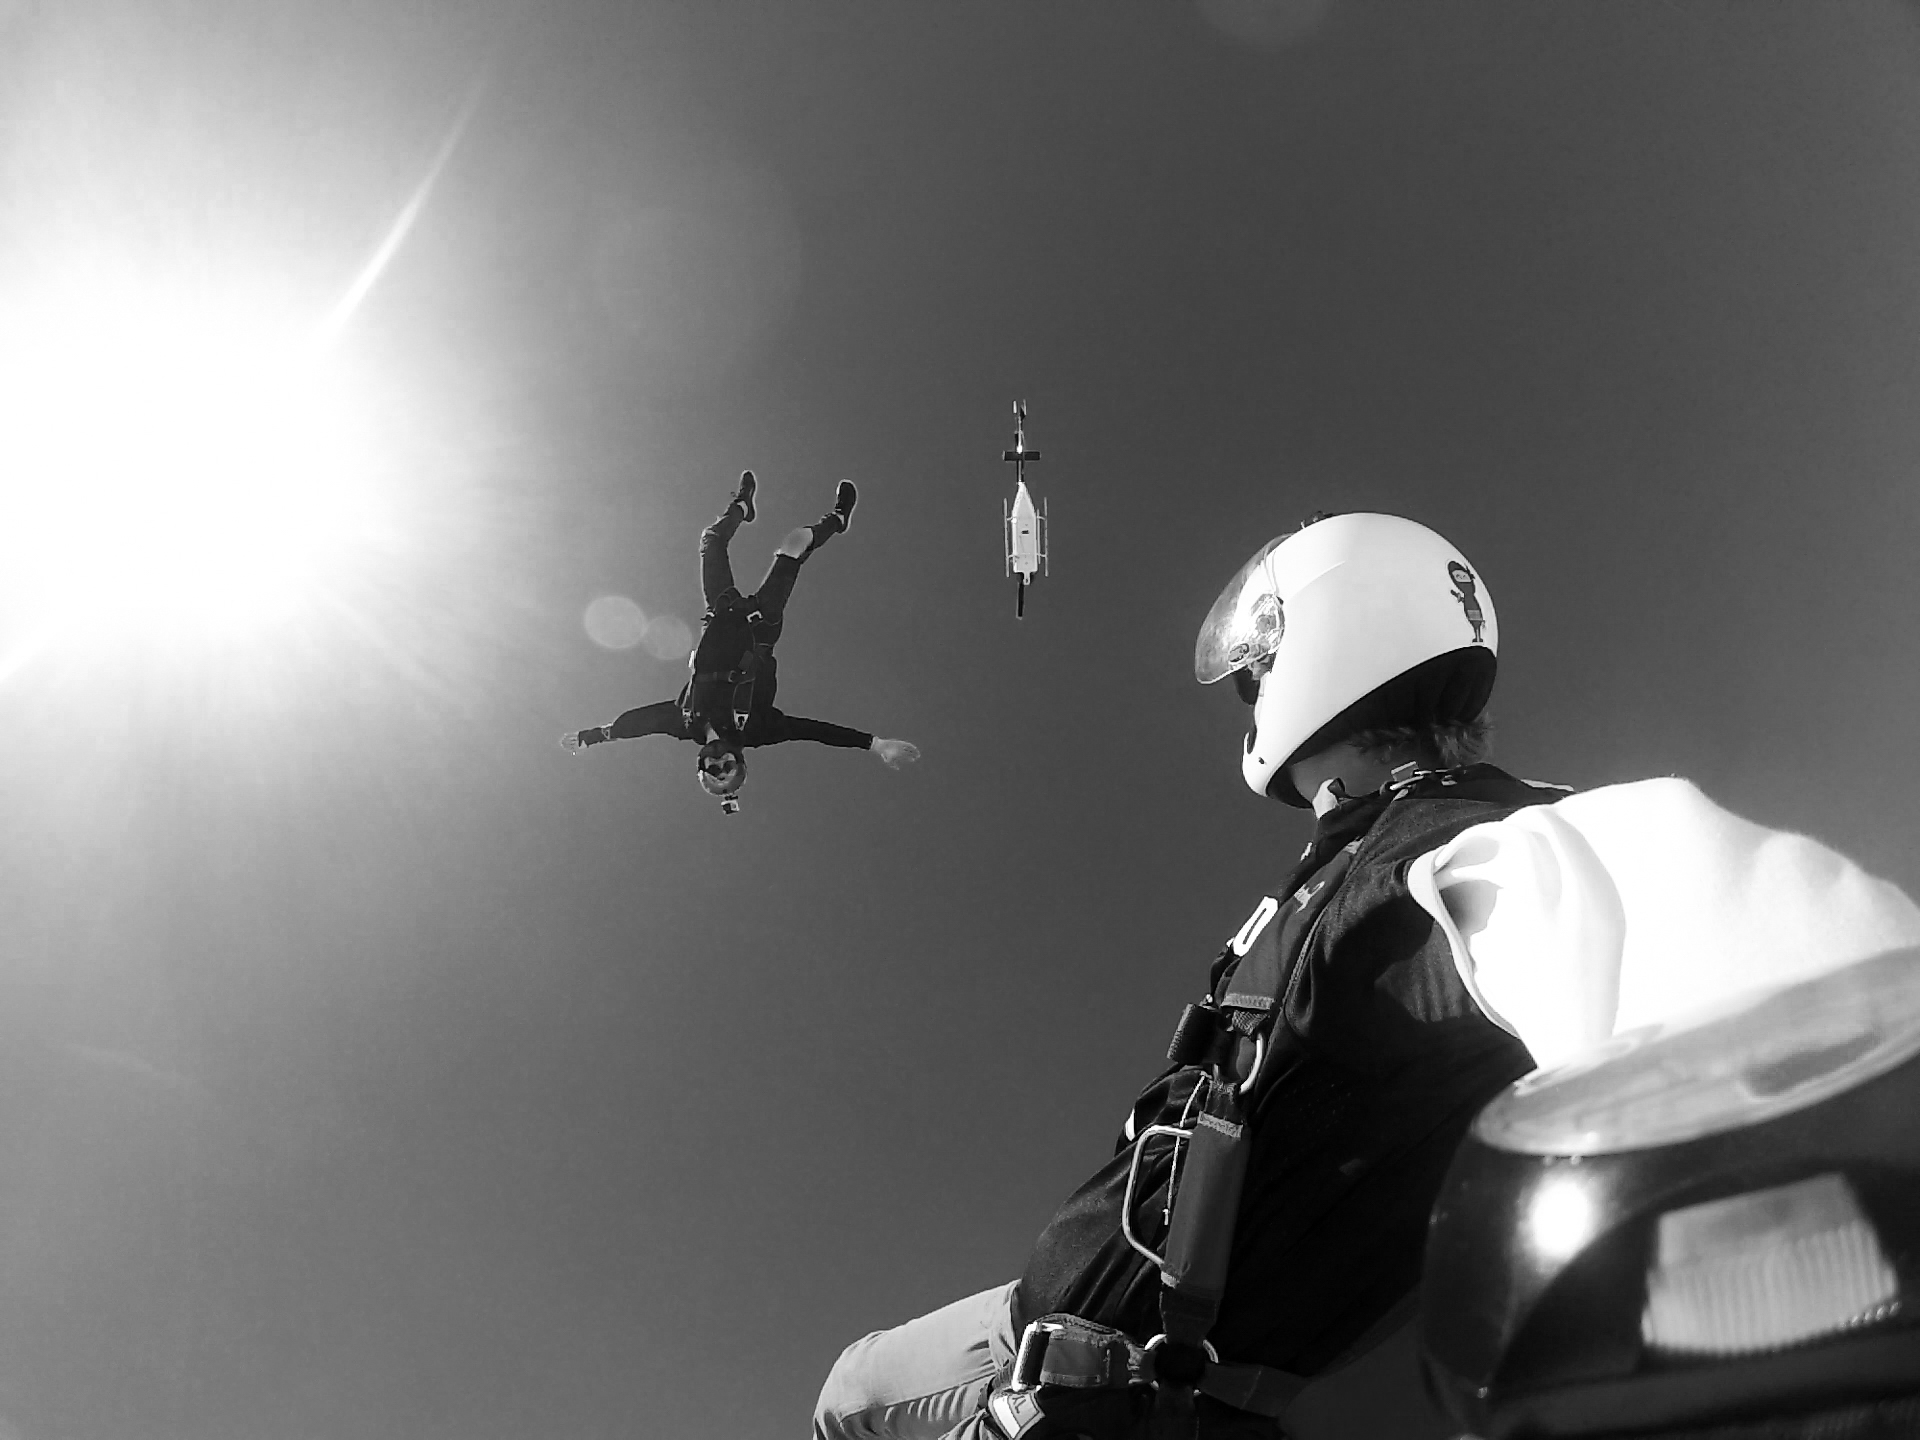 Joseph's Perspective - Sitting down with BASE jumper and action photographer Joseph Williams